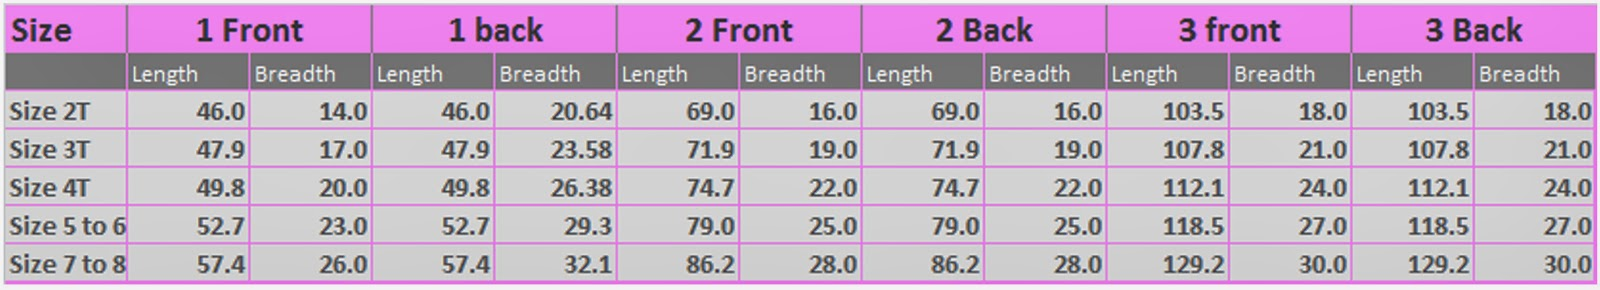 Summer dress measurements girl